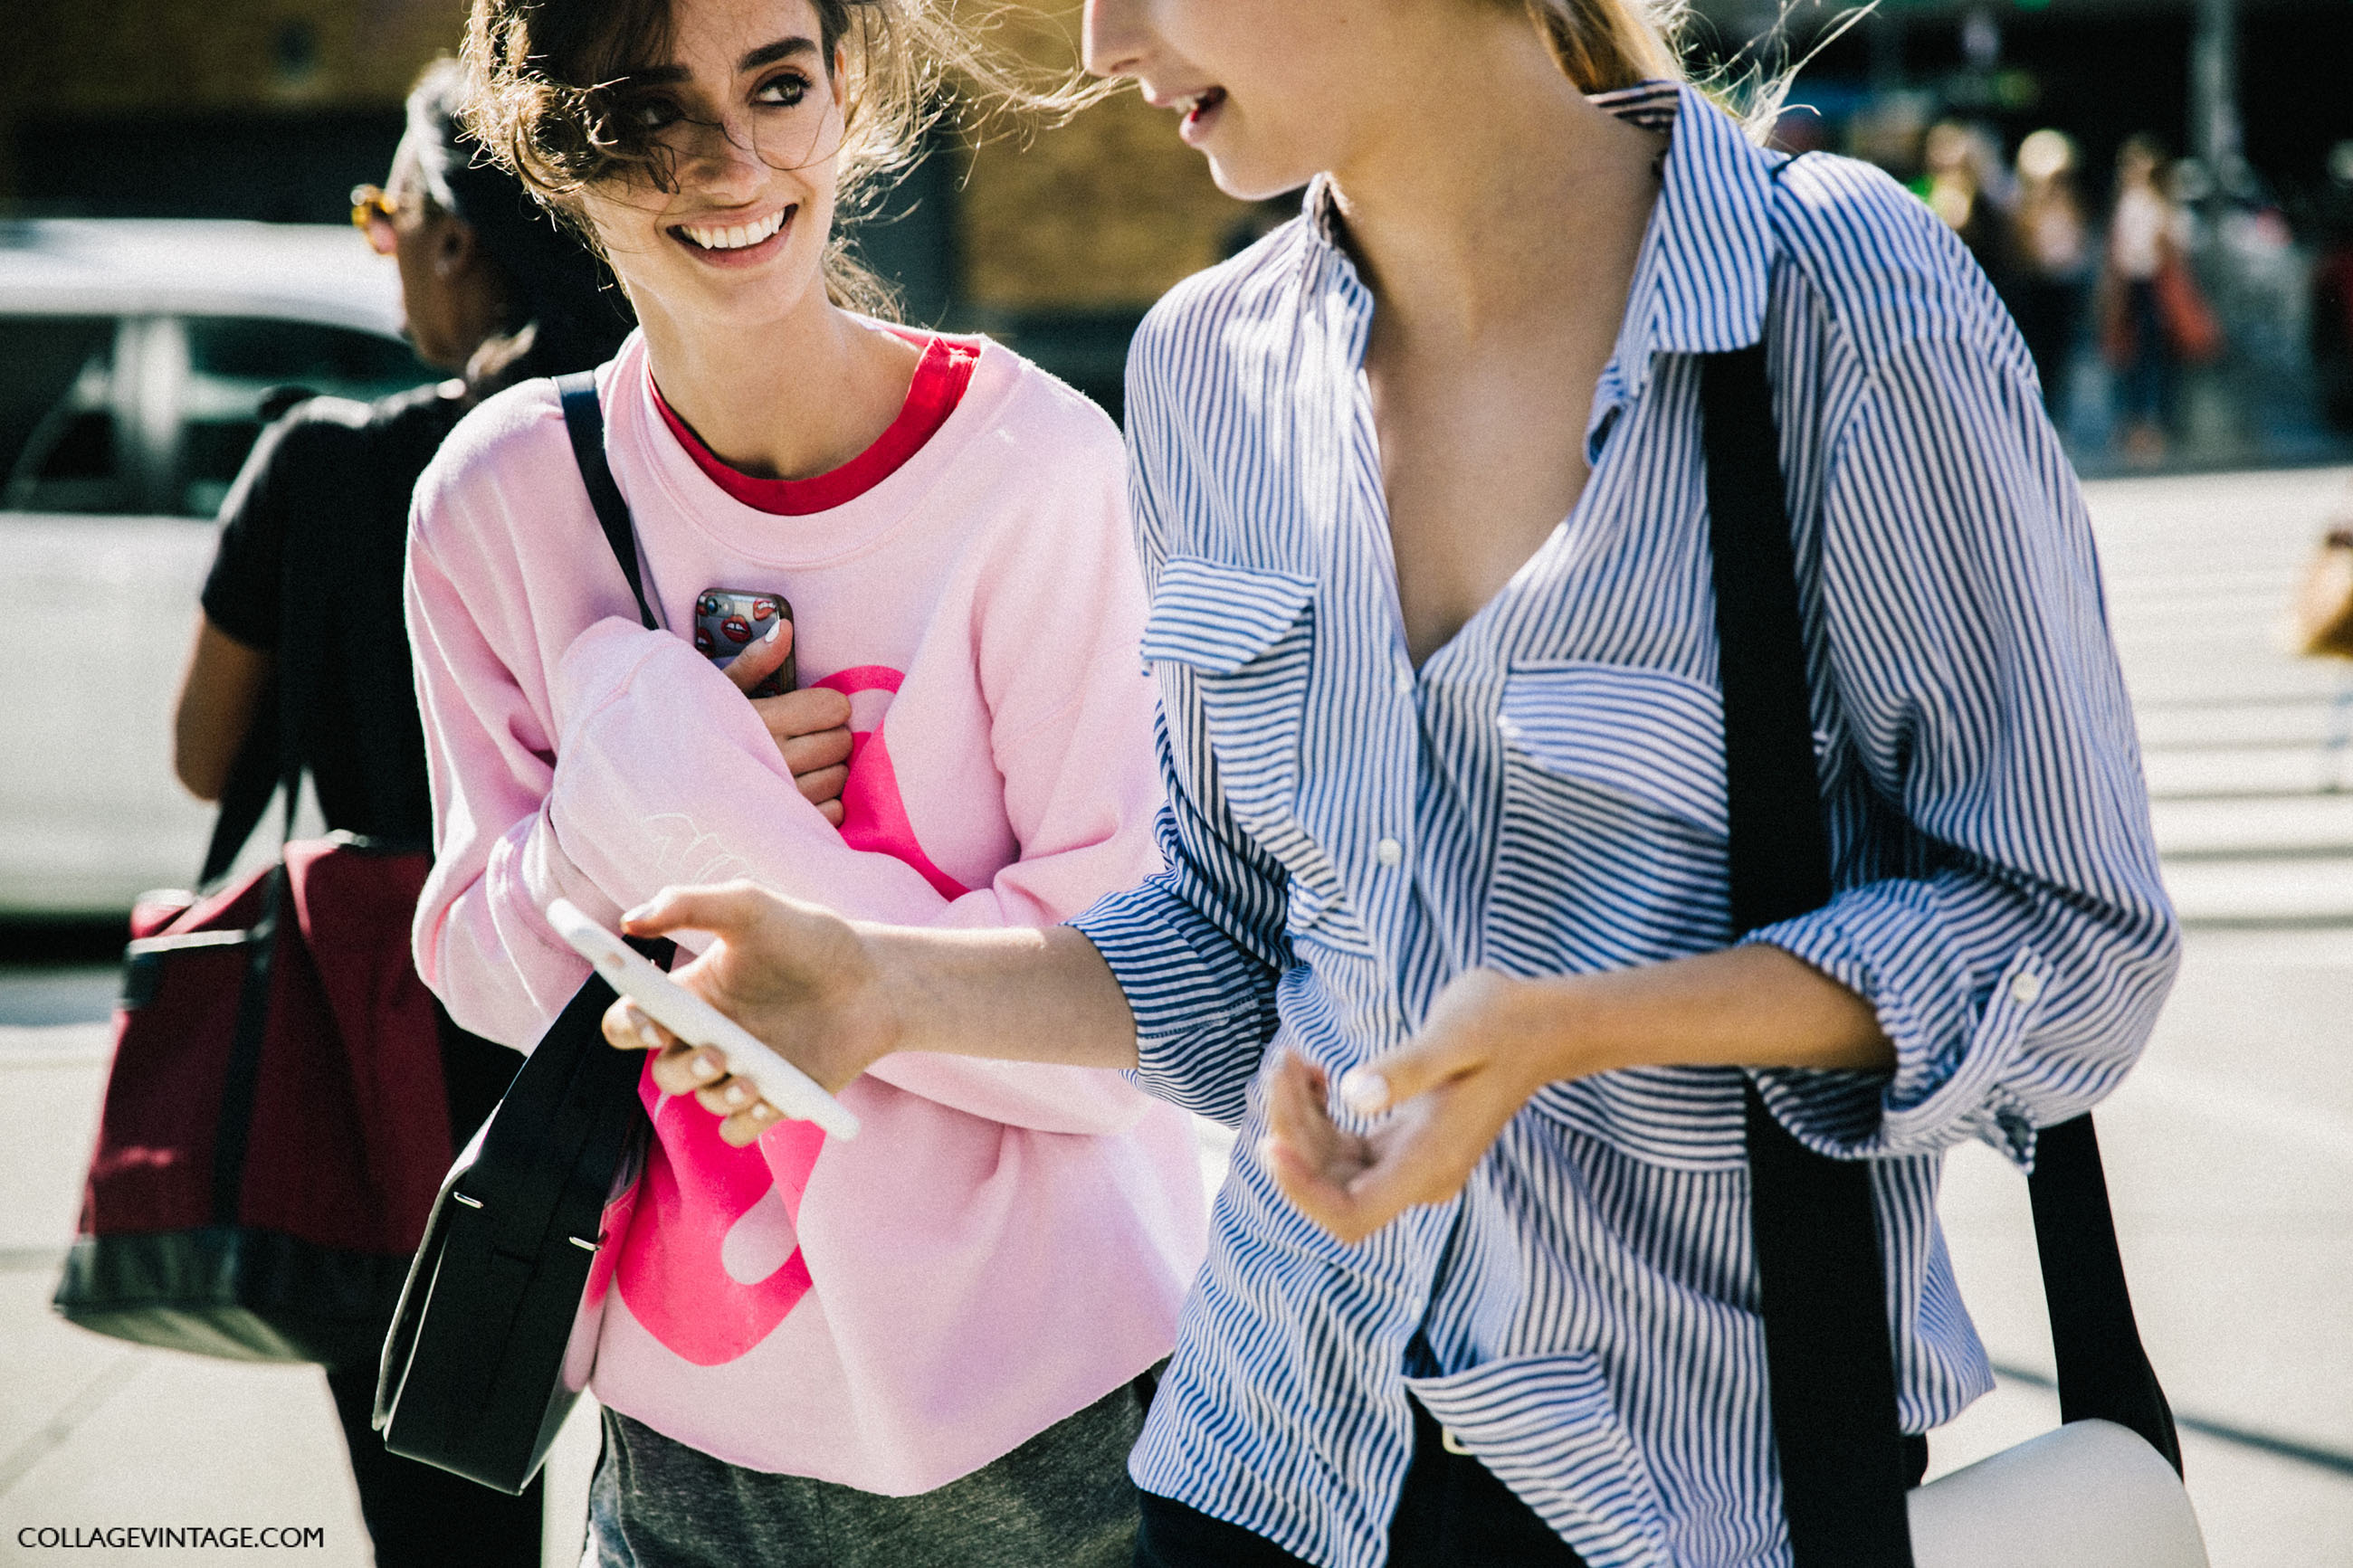 nyfw-new_york_fashion_week_ss17-street_style-outfits-collage_vintage-vintage-phillip_lim-the-row-proenza_schouler-rossie_aussolin-389